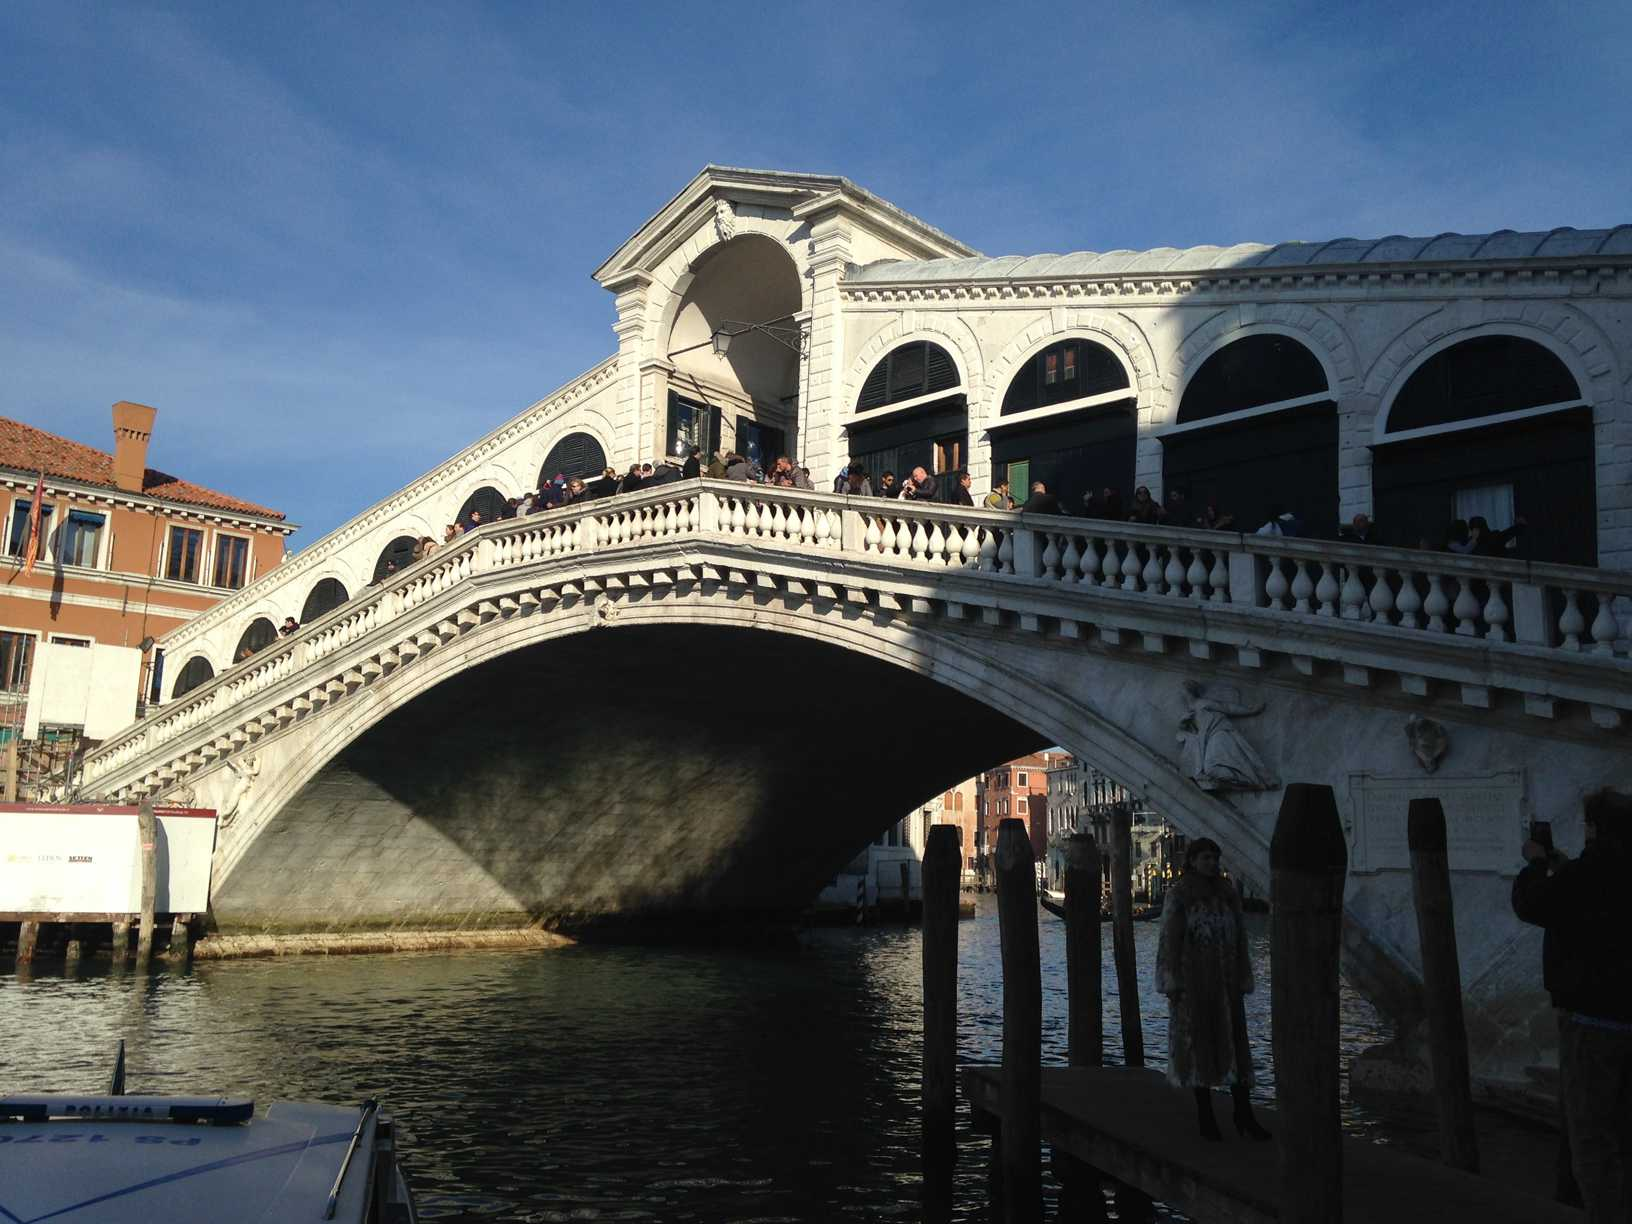 The Rialto Bridge in Venice, Italy full of people.